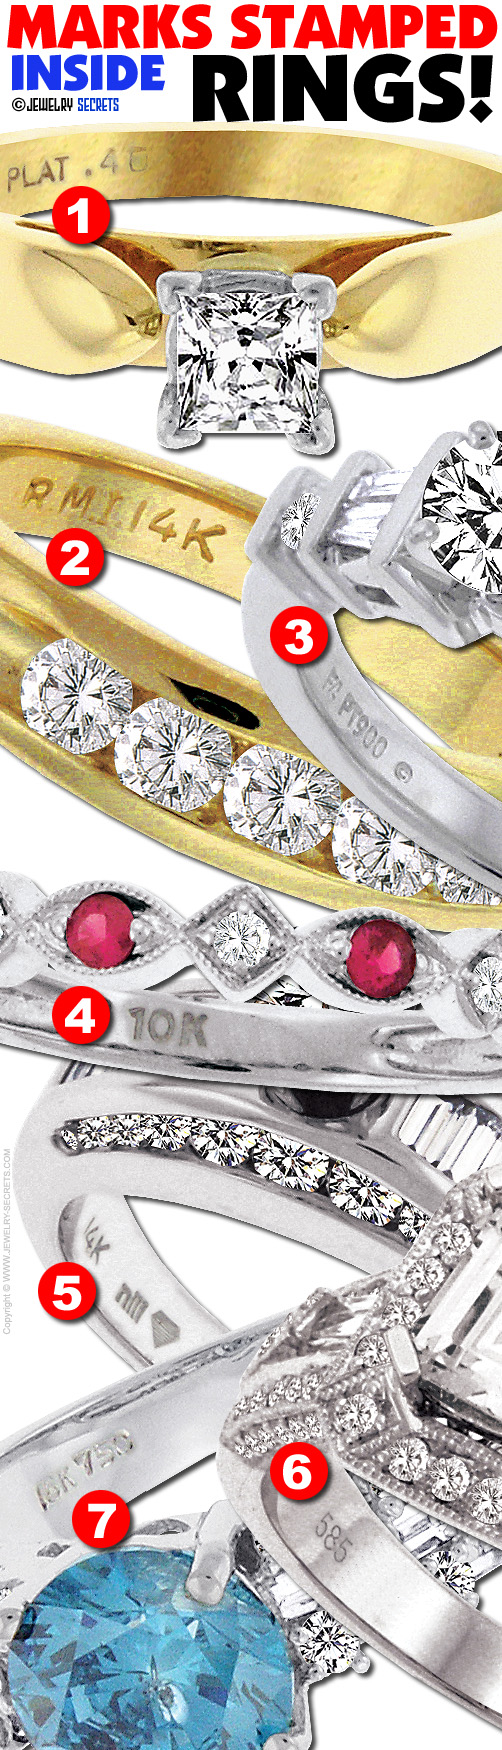 MARKS STAMPED INSIDE RINGS – Jewelry Secrets